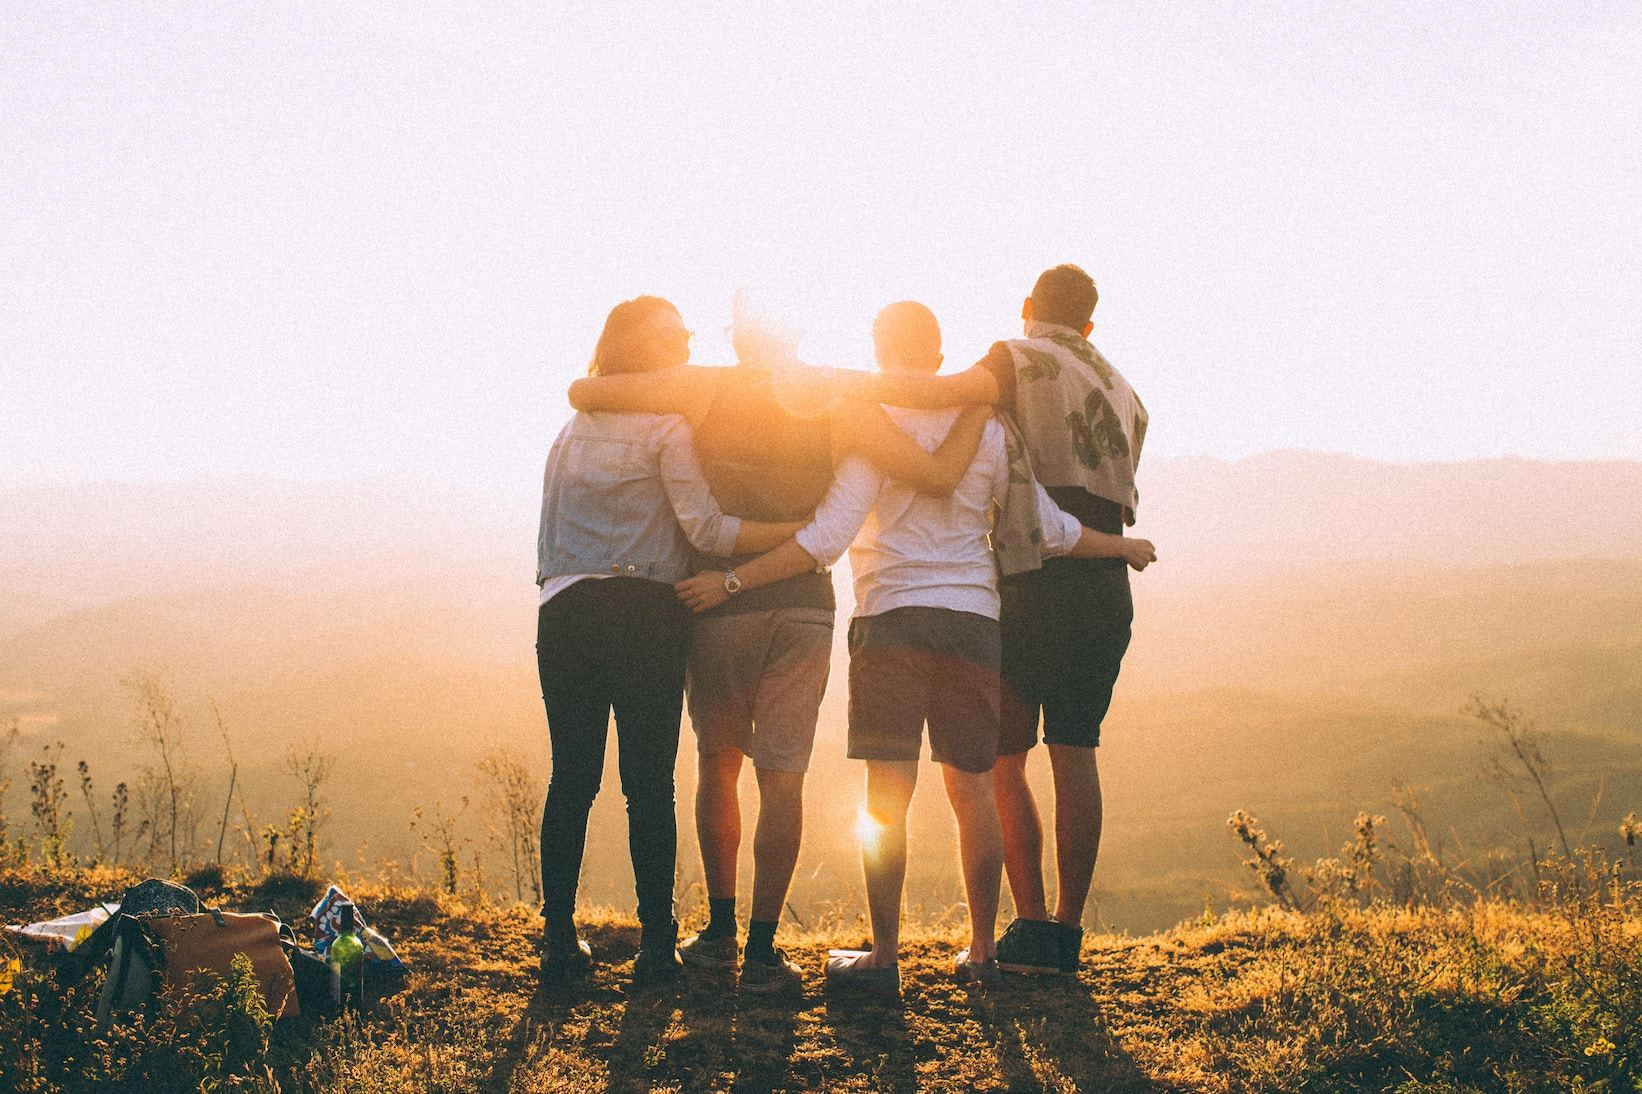 Four people with arms around each other